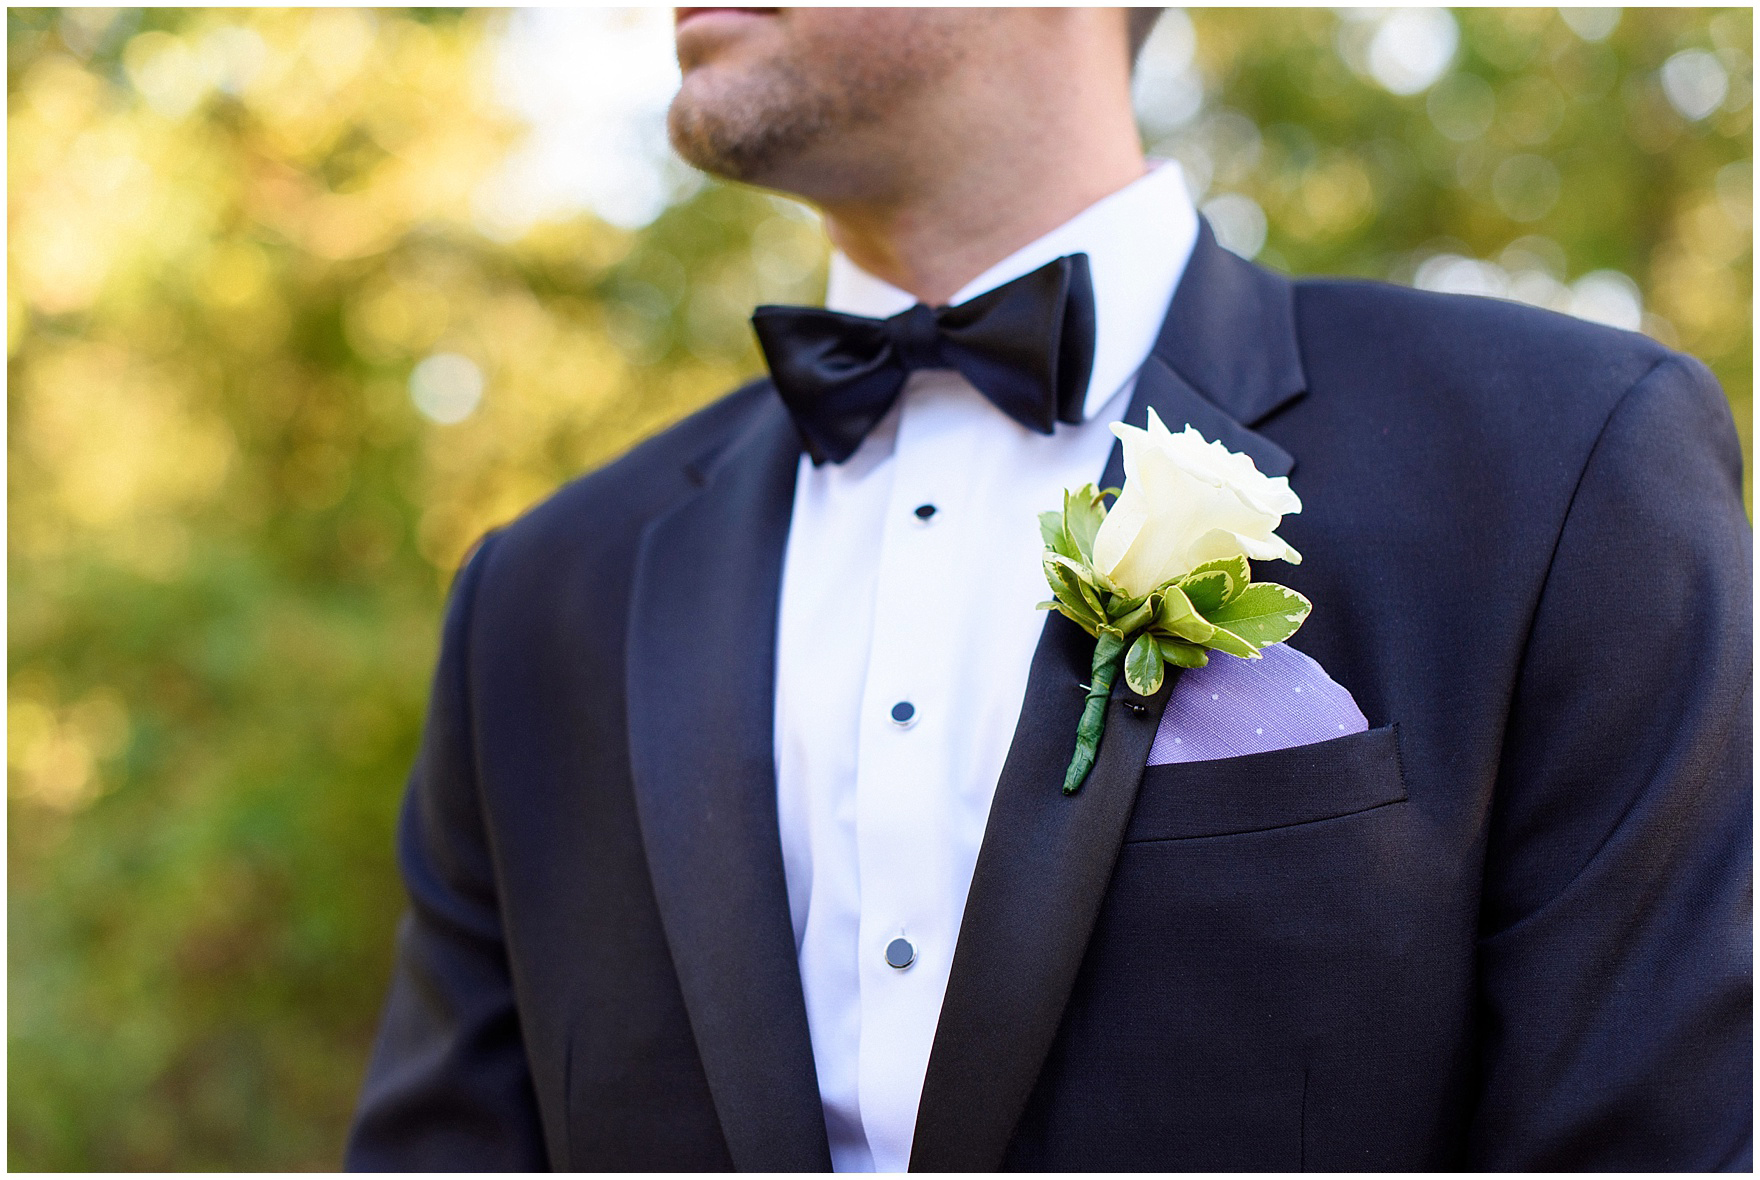 Detail of a groomsman's boutonniere and pocket square during a Glen Club Glenview Illinois wedding.